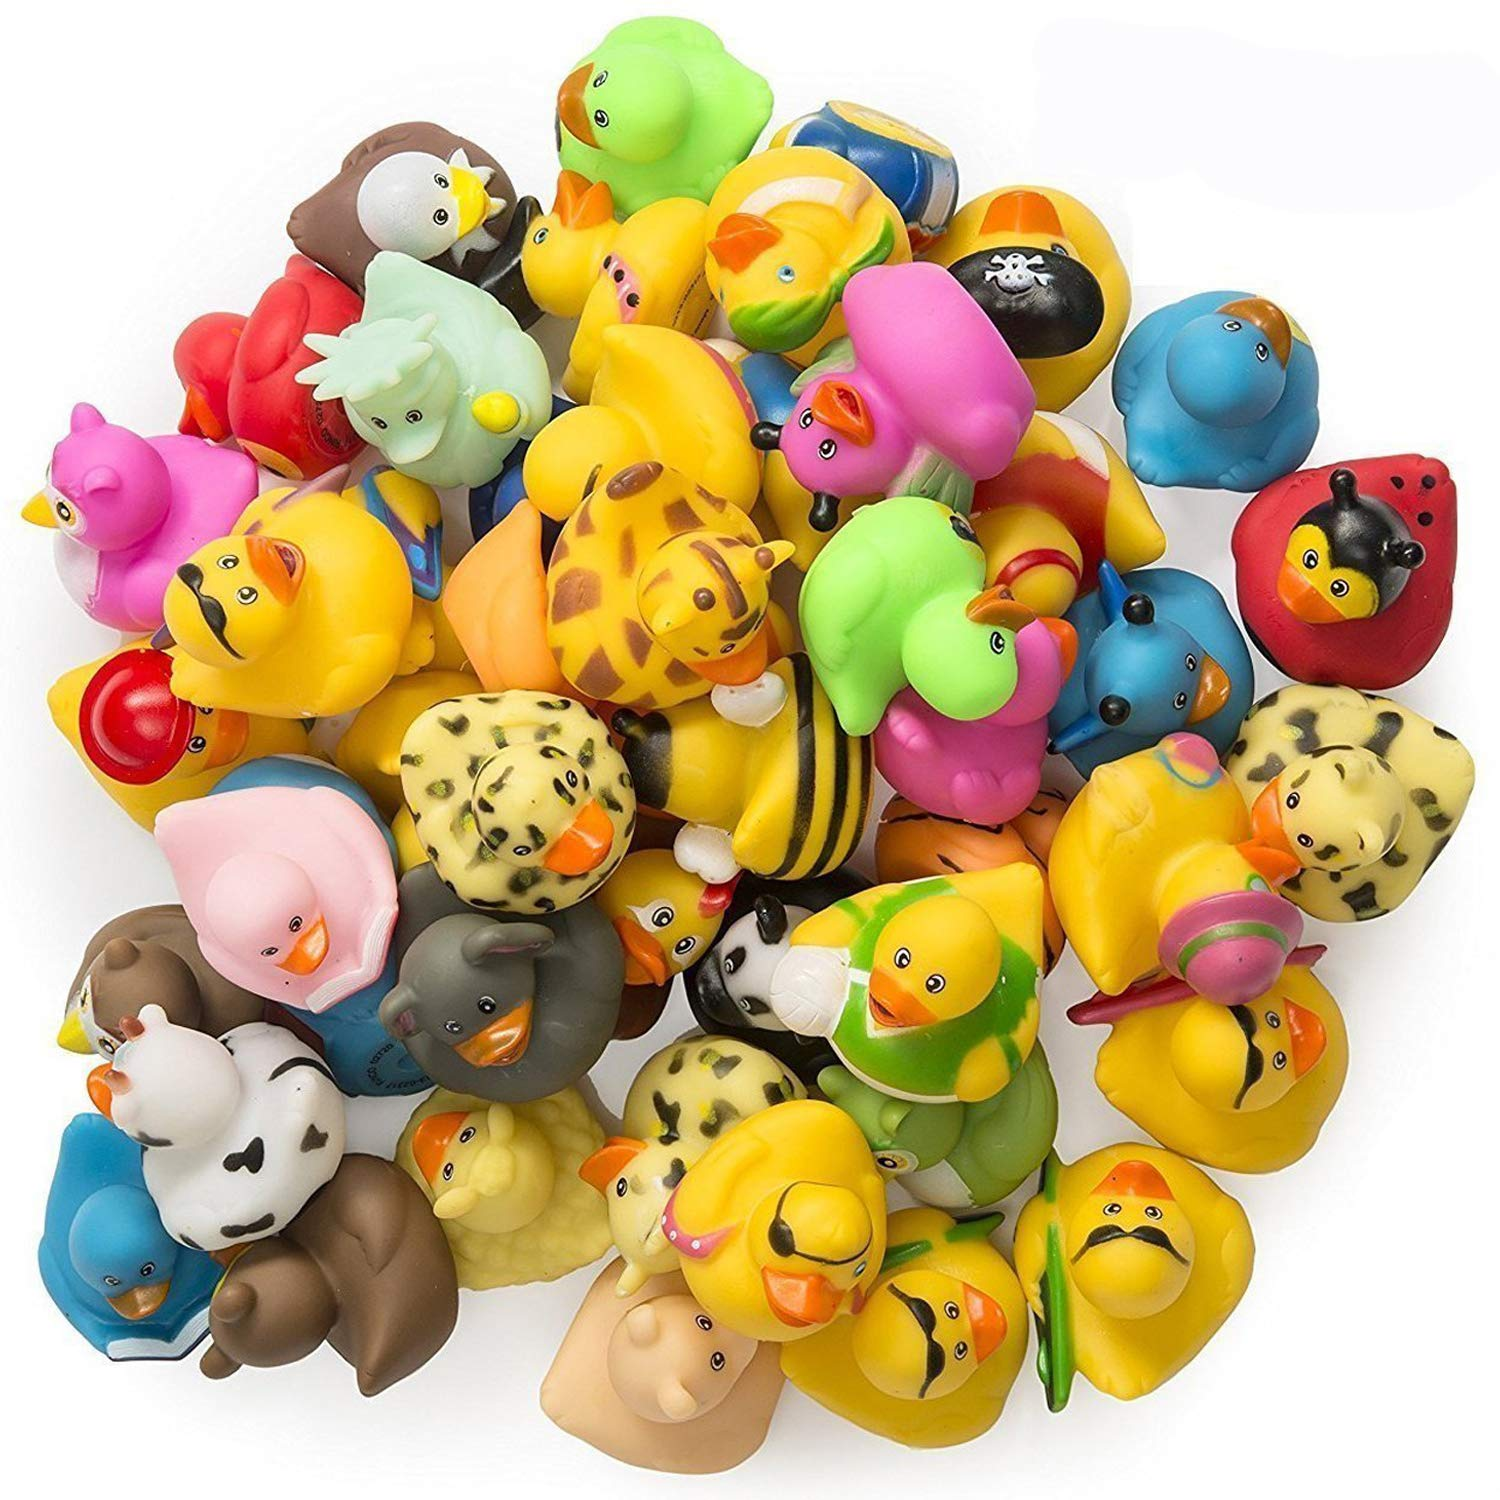 Kicko Rubber Ducks - 50 Assorted Pieces-2 Inch - for Kids, Party Favors, Gift, Birthdays, Baby Showers, Baby Bath Toys, Bath Time, Easter Party Favors, and More (50 Pack)